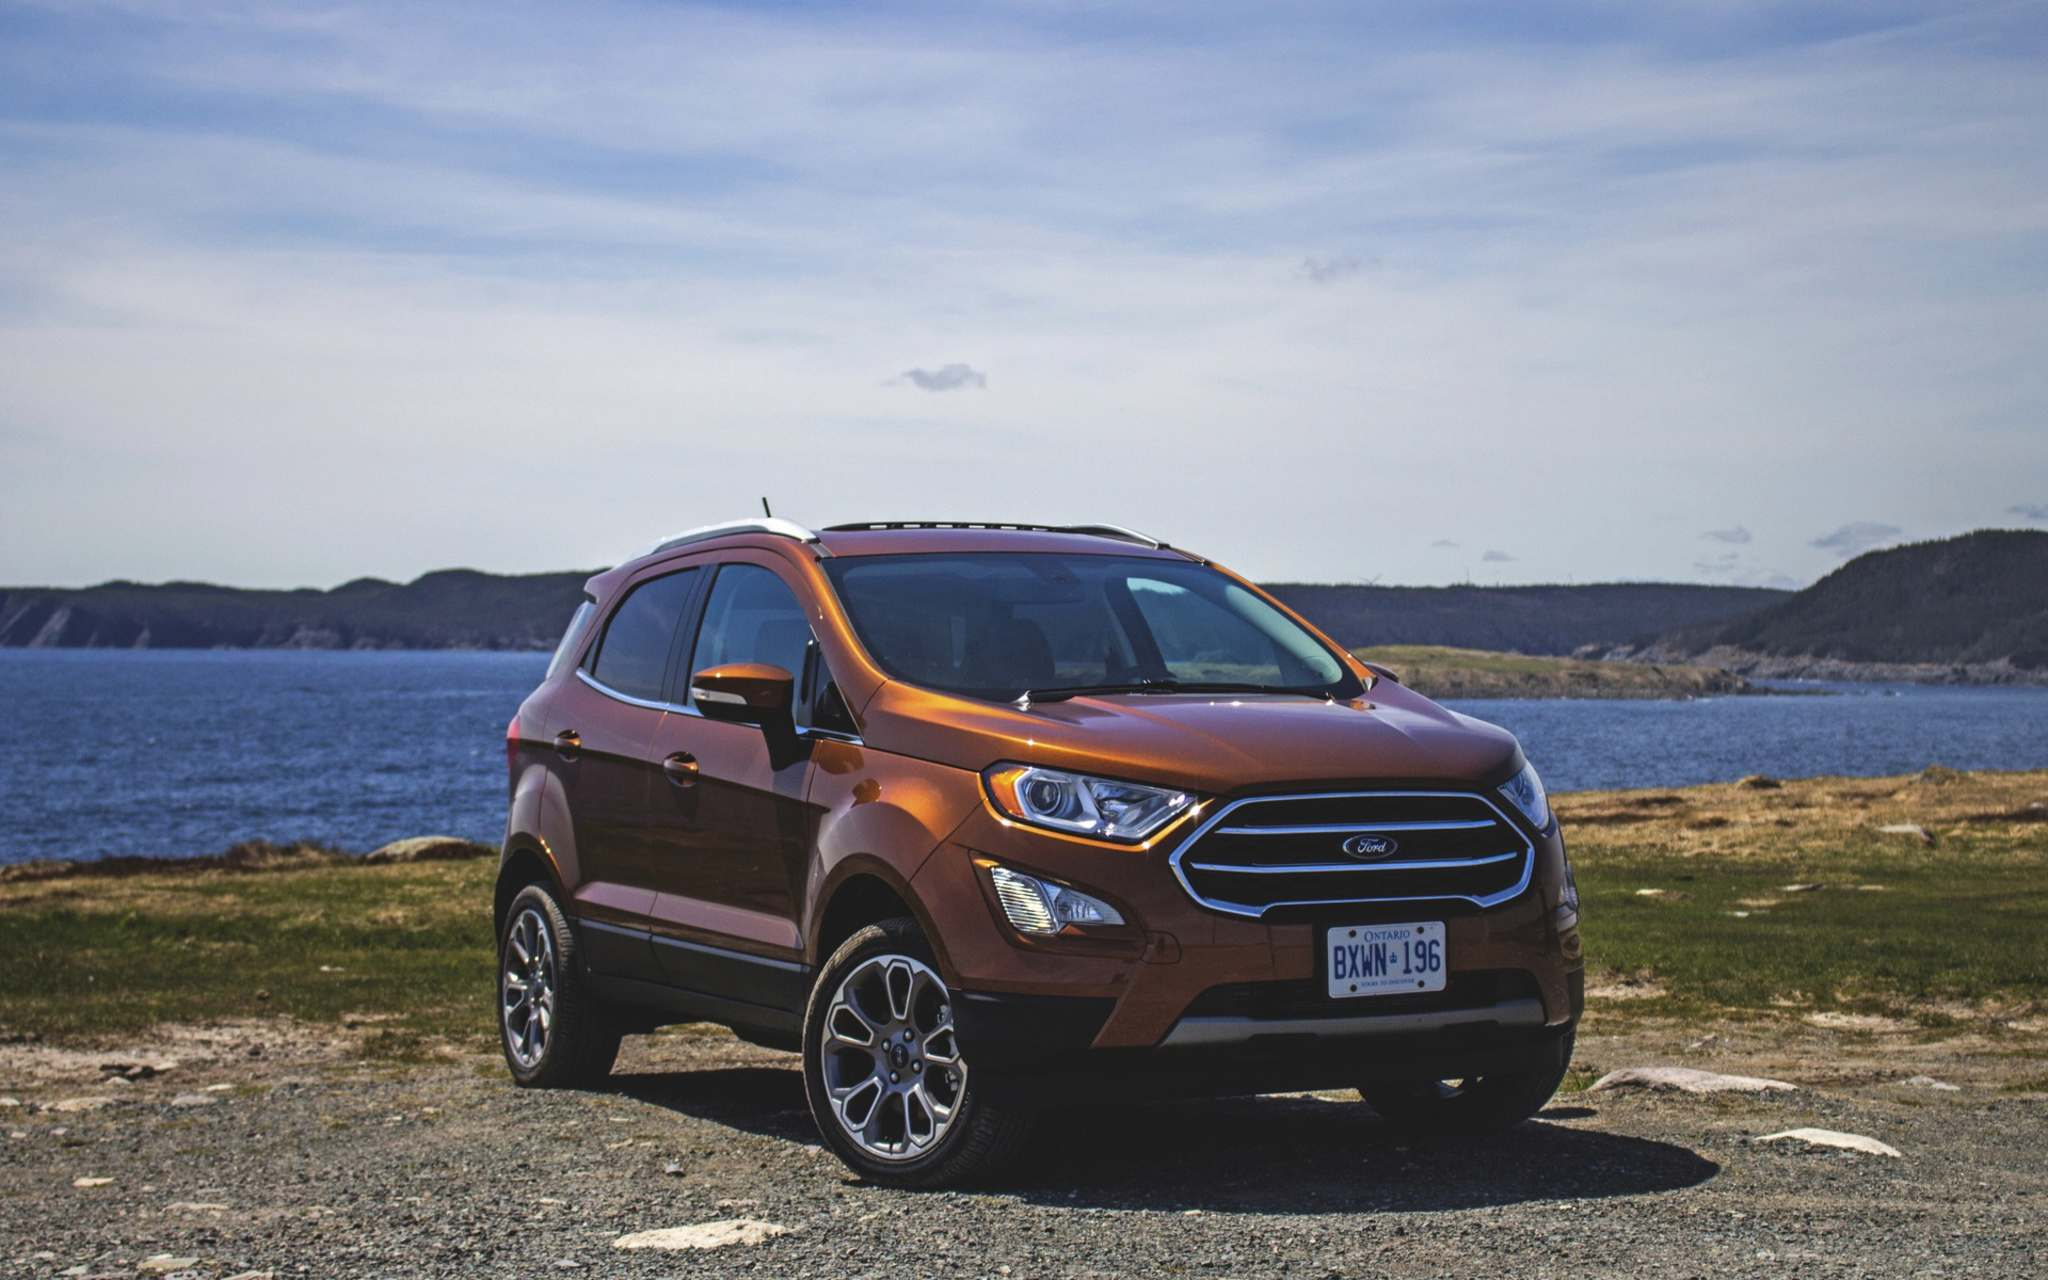 LC MediaThe motorcycle-sized, one-litre EcoBoost motor found in the 2018 Ford EcoSport SUV delivers excellent fuel economy and surprising performance for such a small engine.